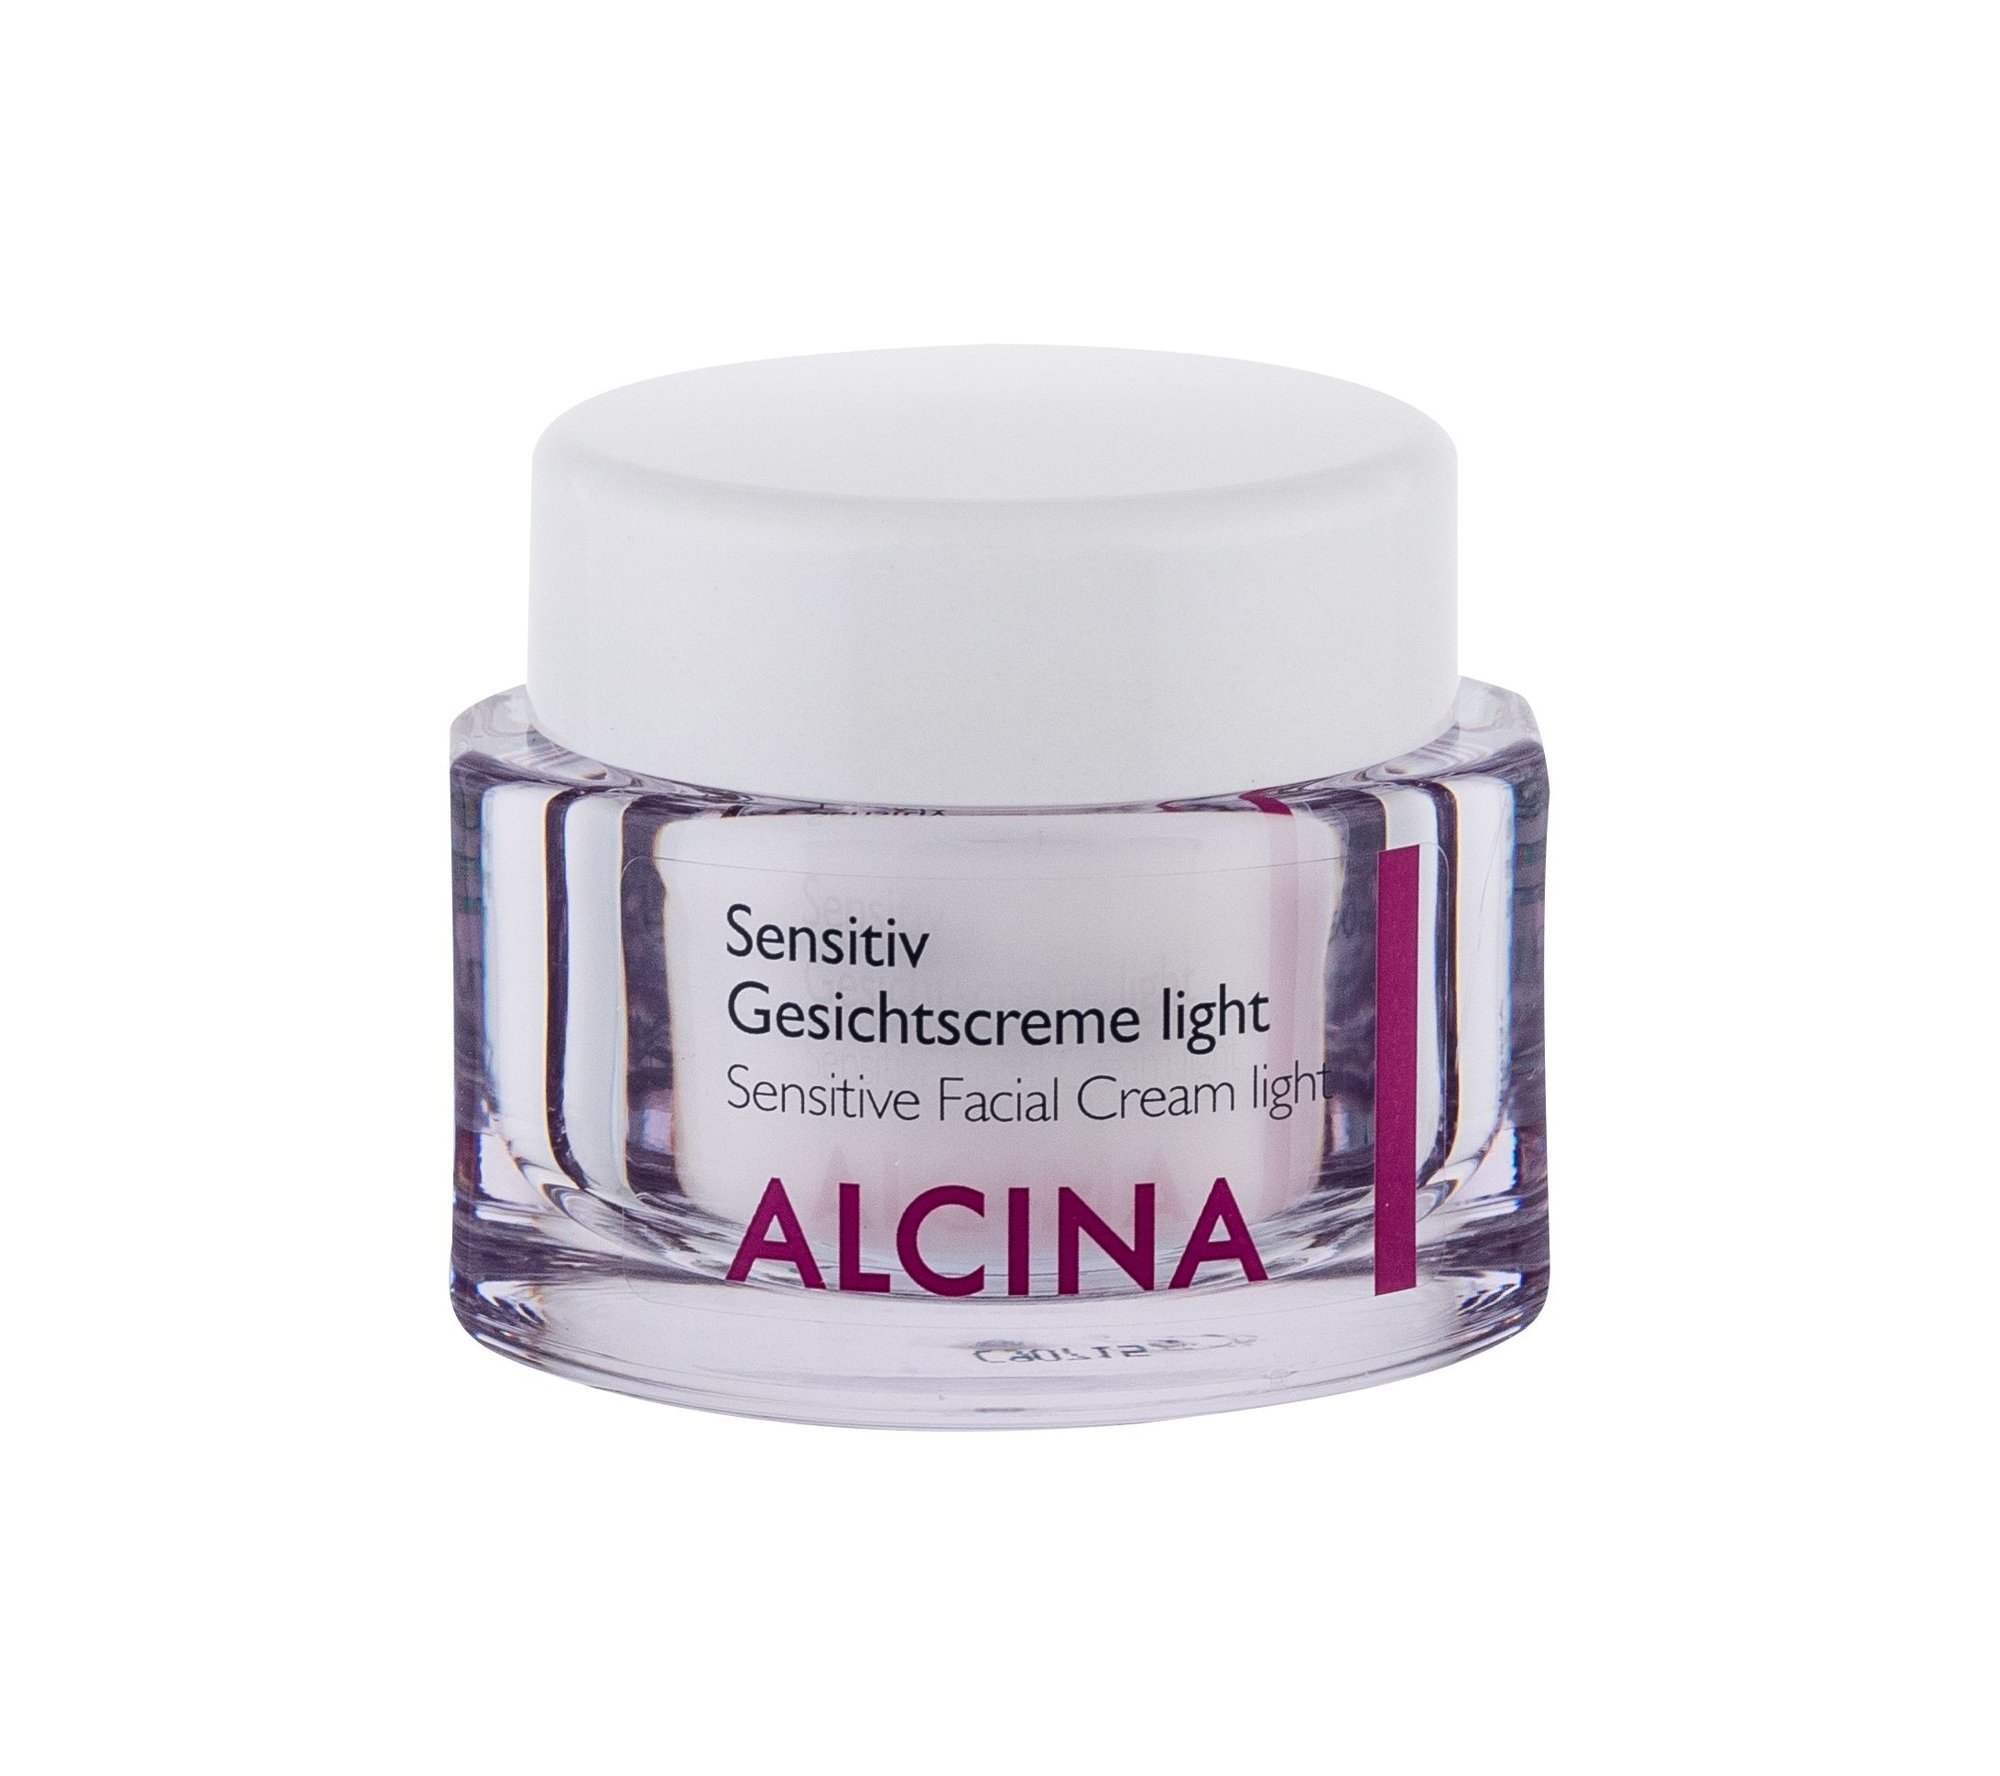 ALCINA Sensitive Facial Cream Day Cream 50ml